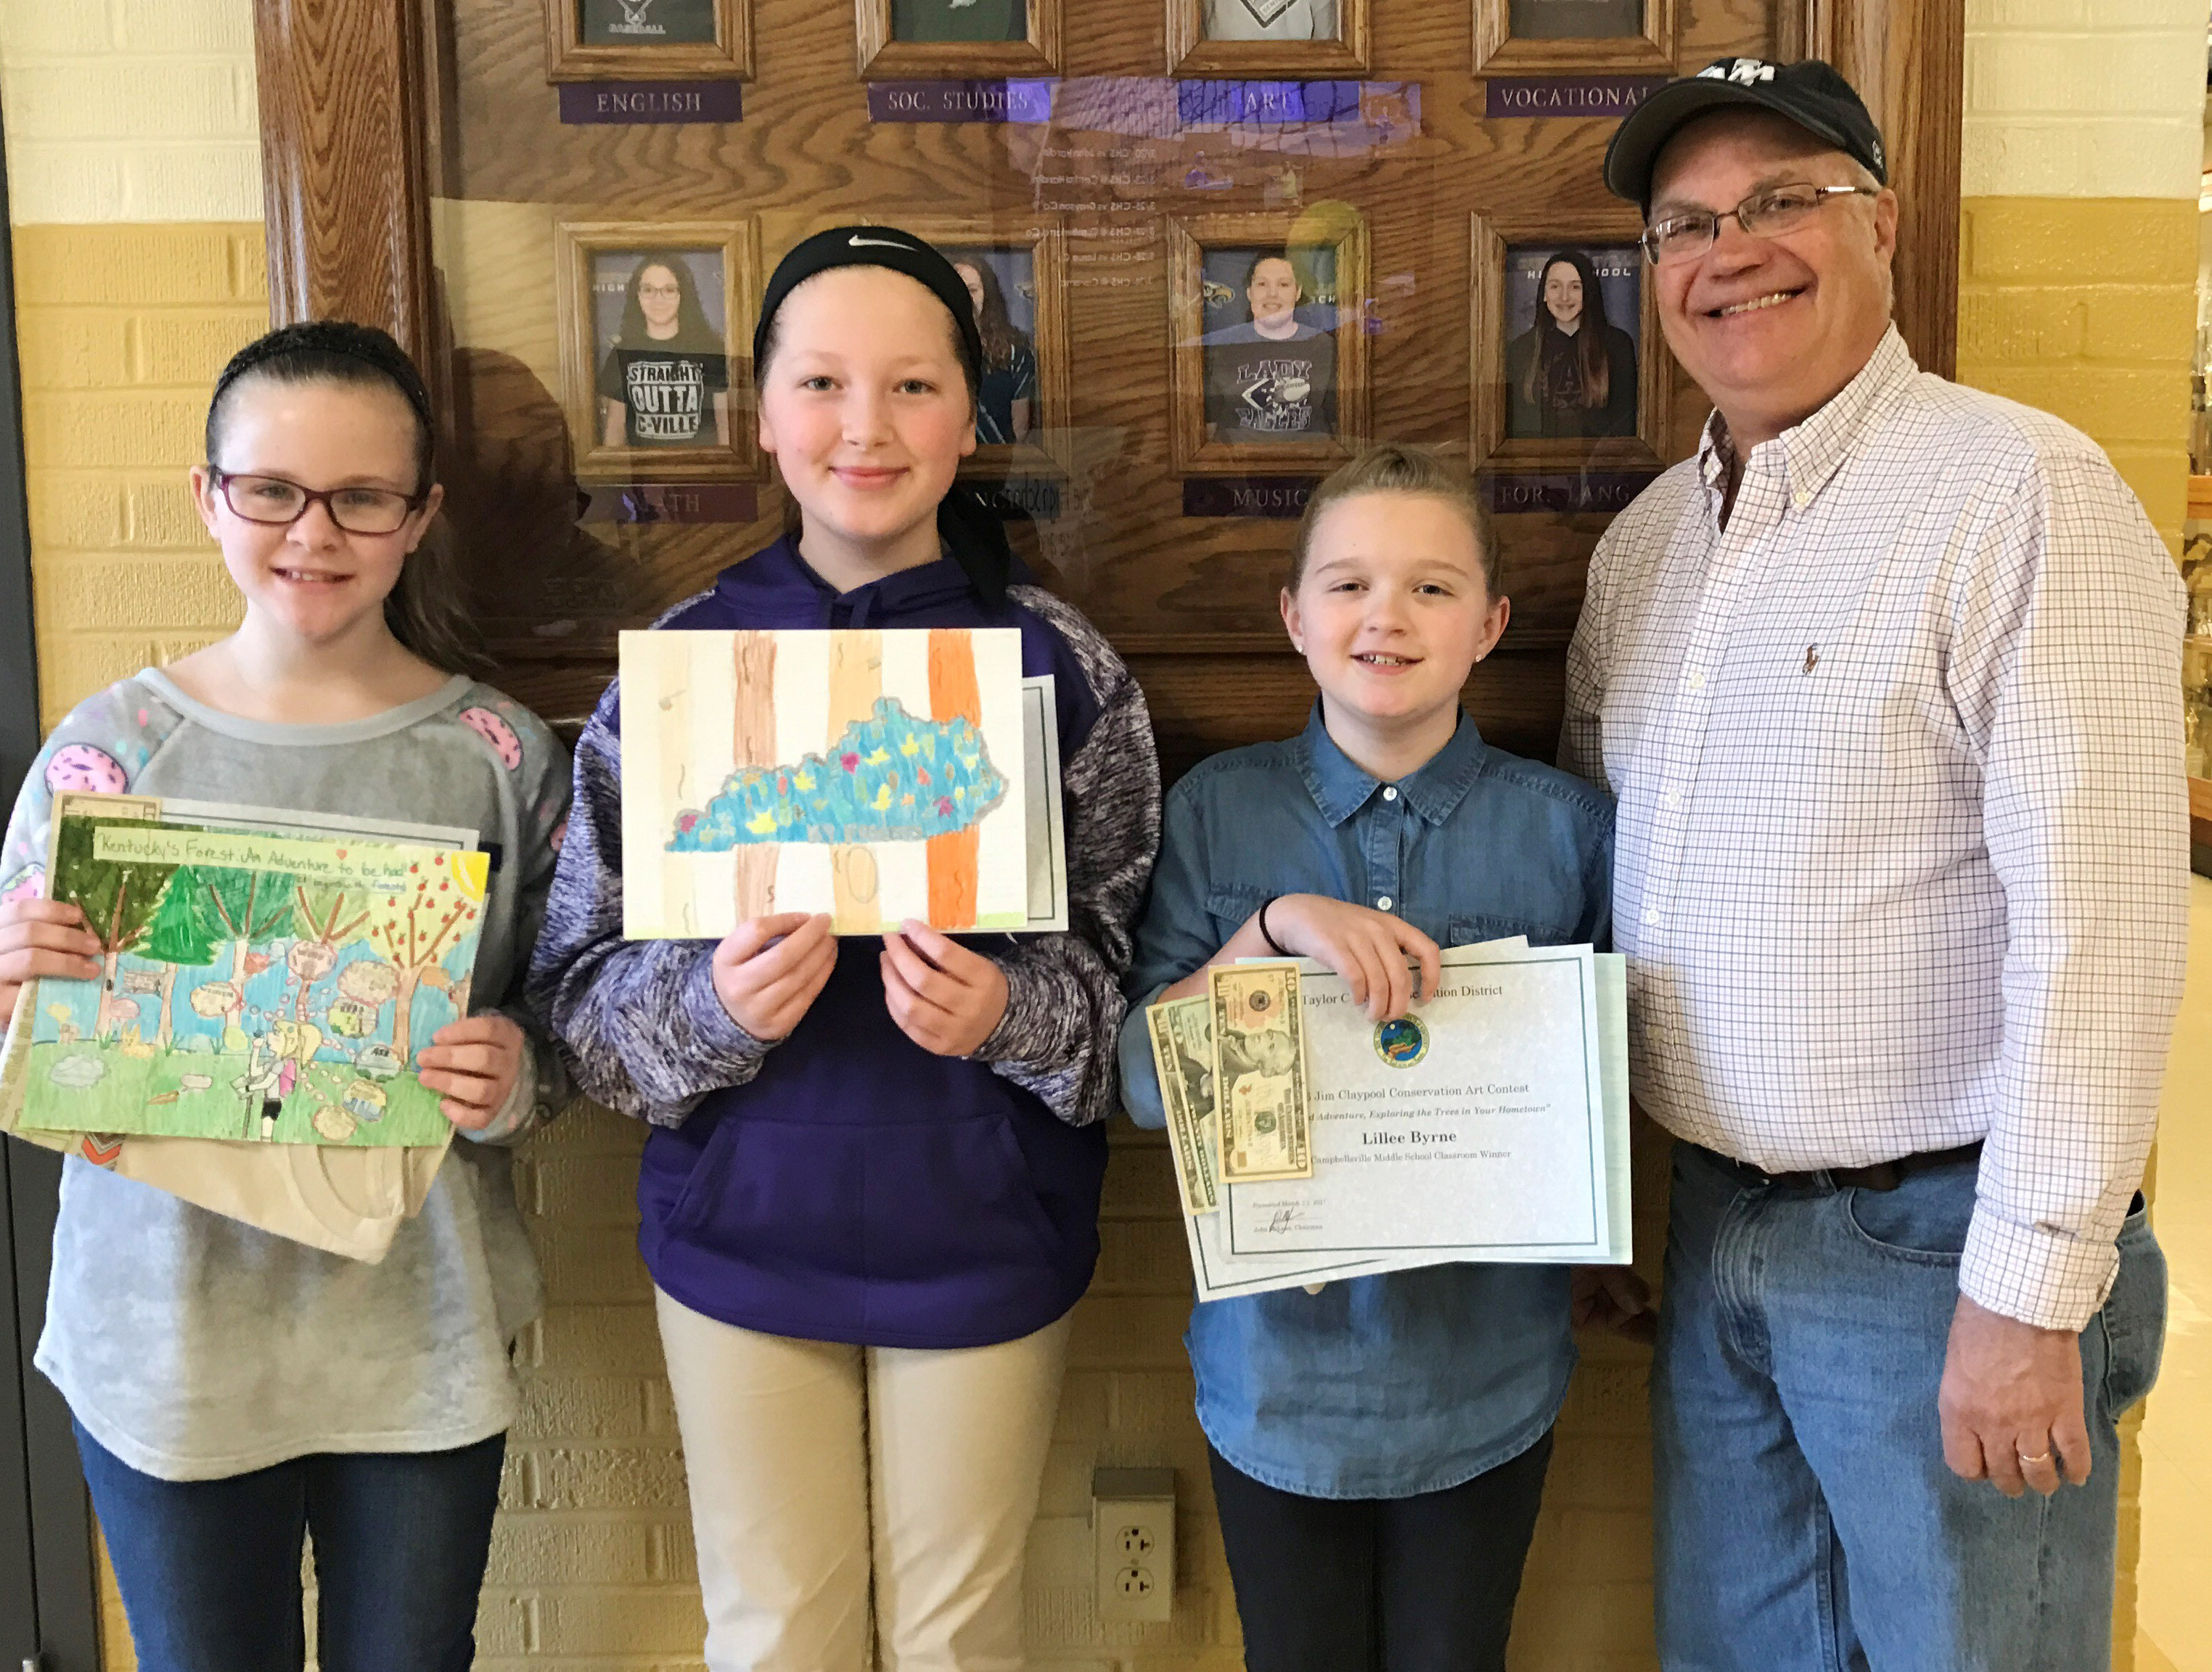 CMS art winners are, from left, fifth-graders Karlie Cox, Ava Hughes and Lillee Byrne, who are classroom winners, and Taylor County Conservation District Board Member Barry Smith. Byrne was also the overall winner for her school.